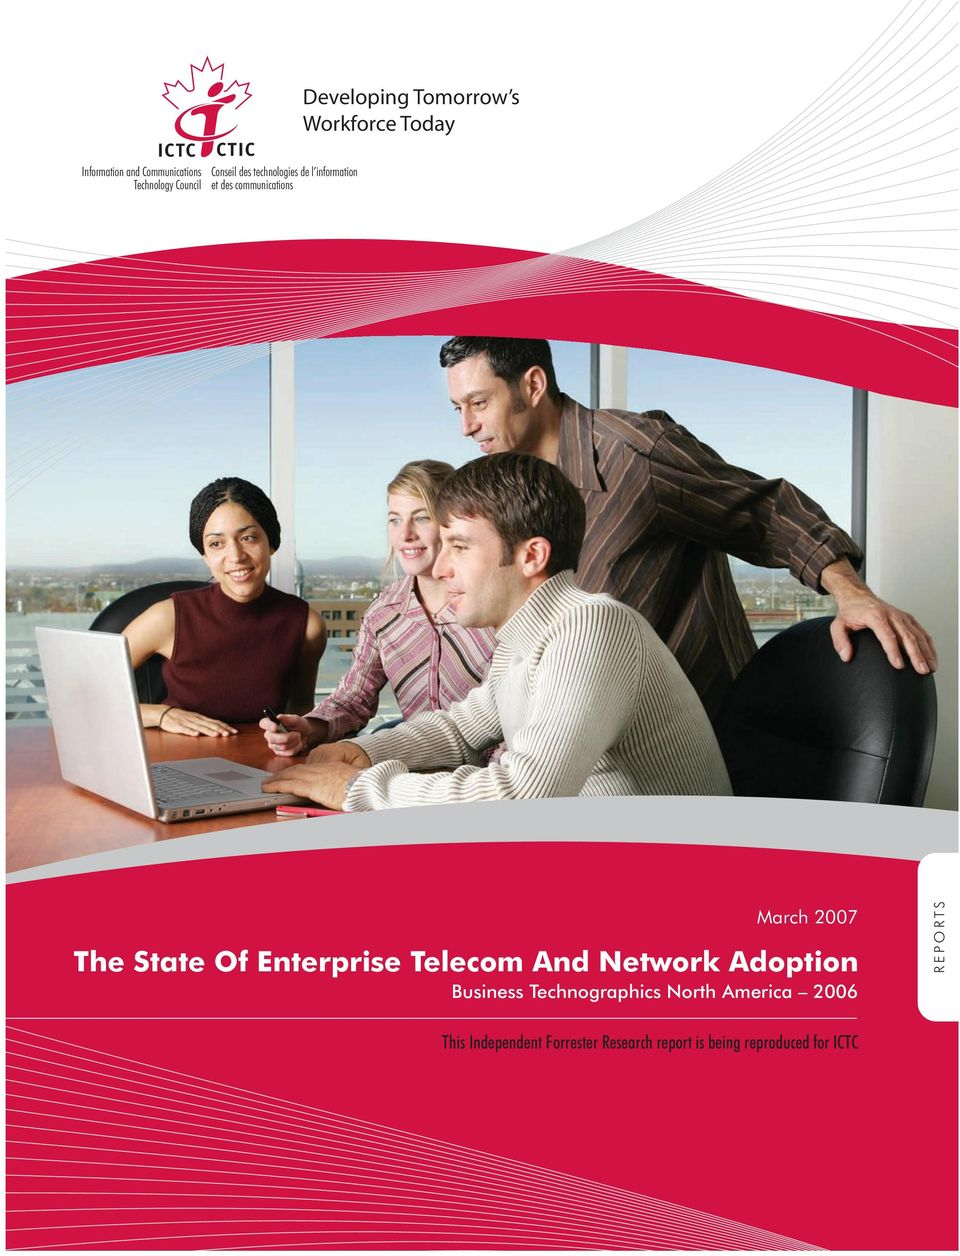 The State Of Enterprise Telecom And Network Adoption Business Technographics North